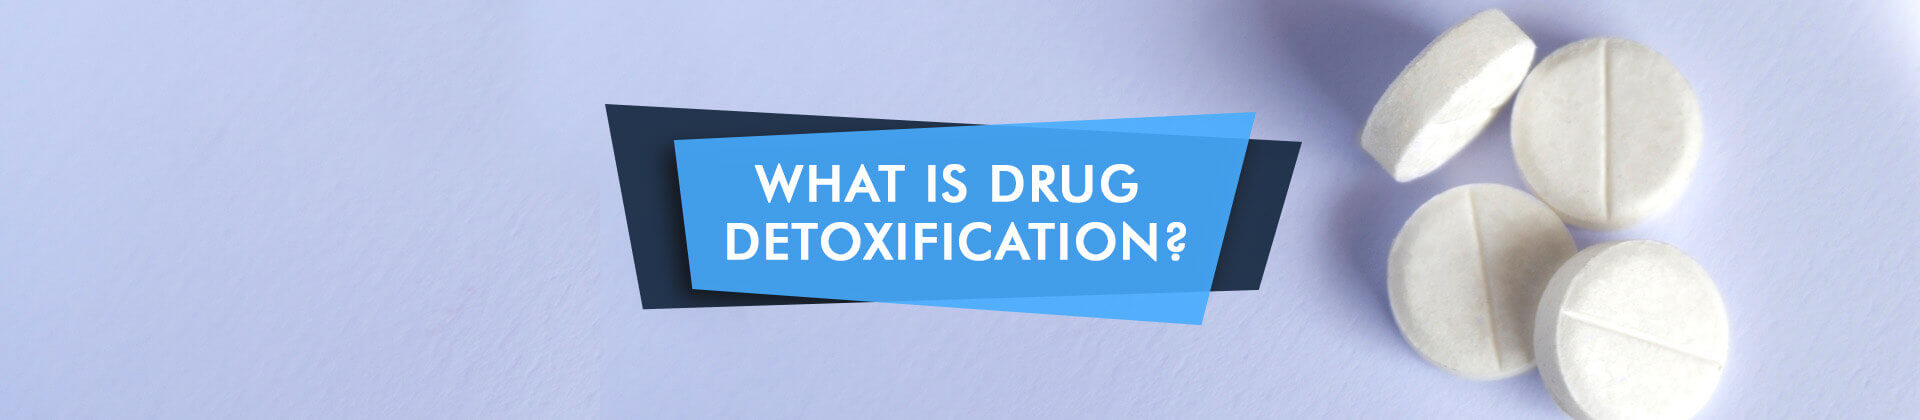 Substance Detoxification